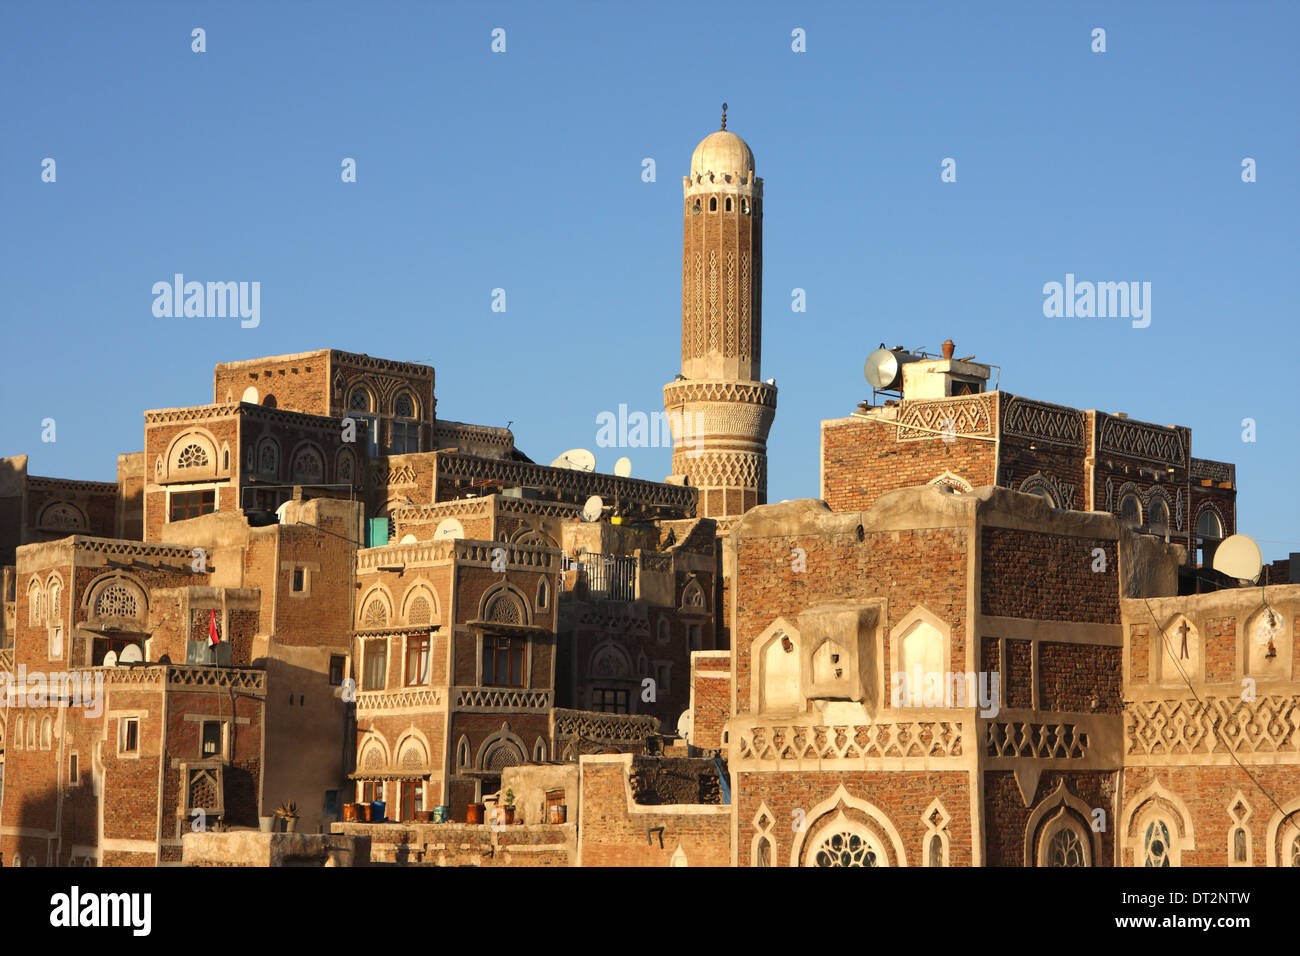 View of the Old City in Sana'a, Yemen, from the Bab al Yaman - Stock Image